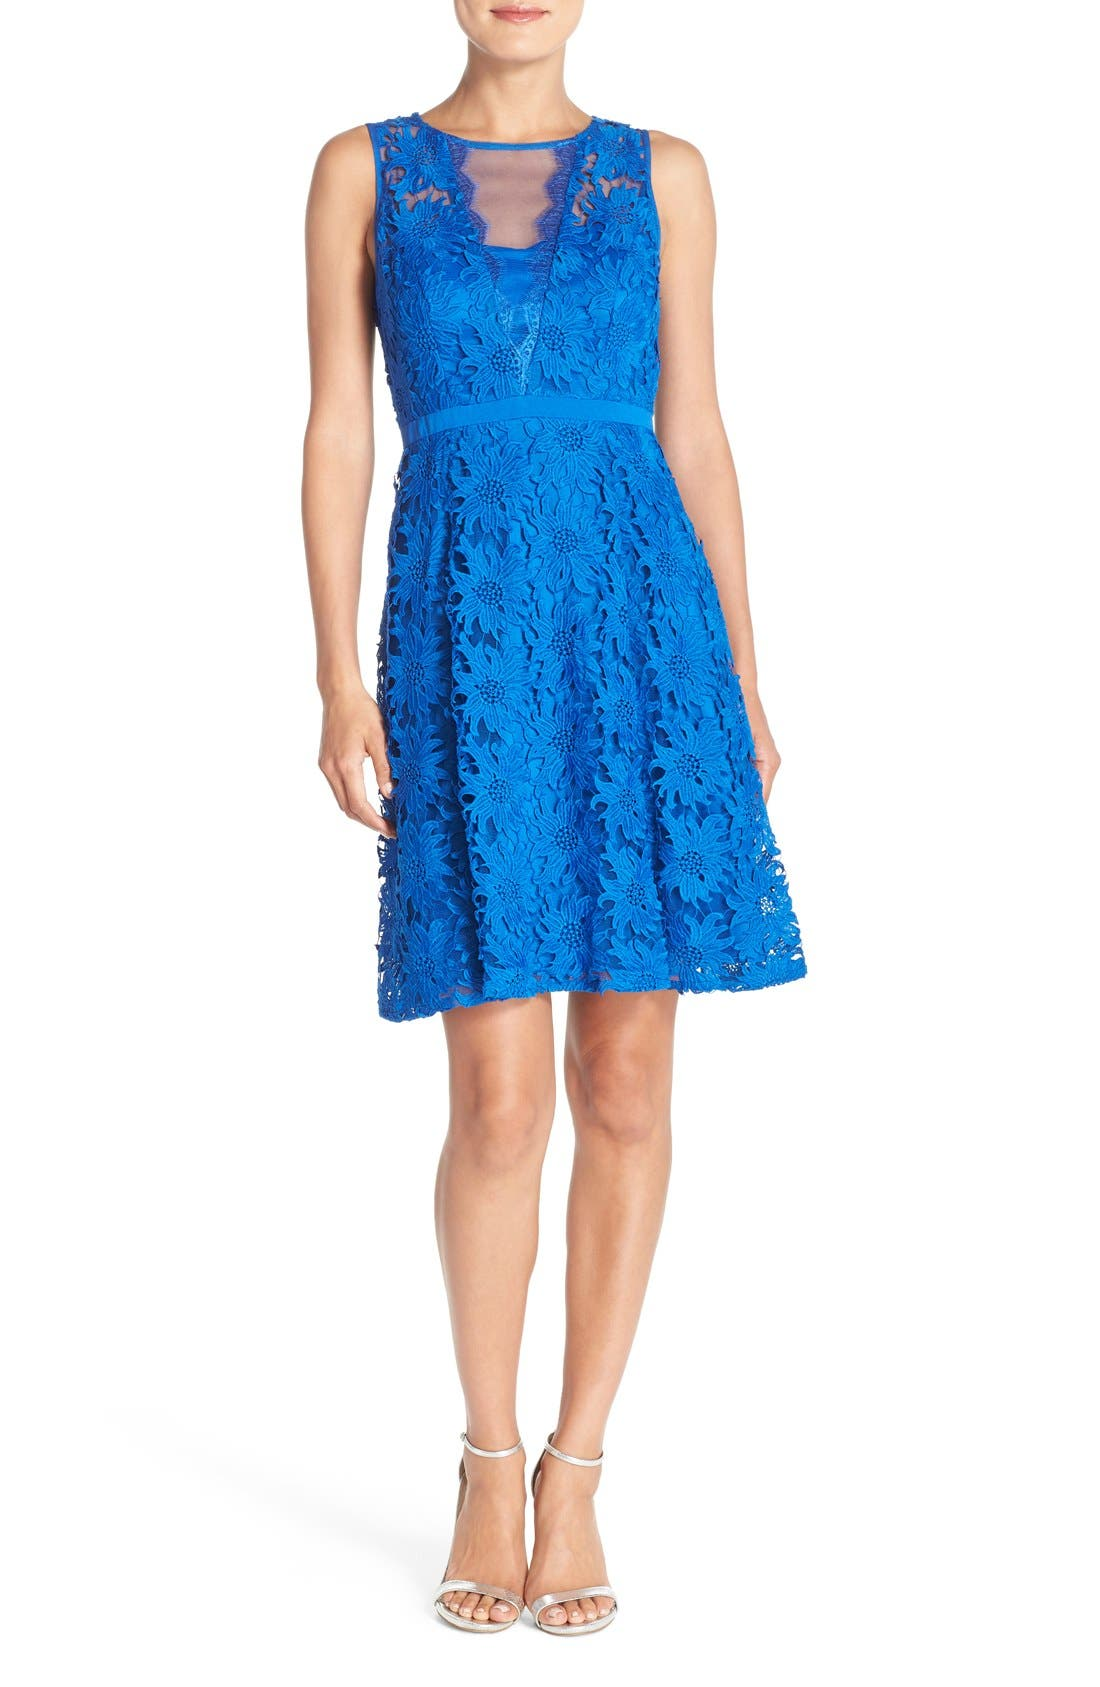 ADRIANNA PAPELL, Illusion Floral Lace Fit & Flare Dress, Alternate thumbnail 2, color, 433